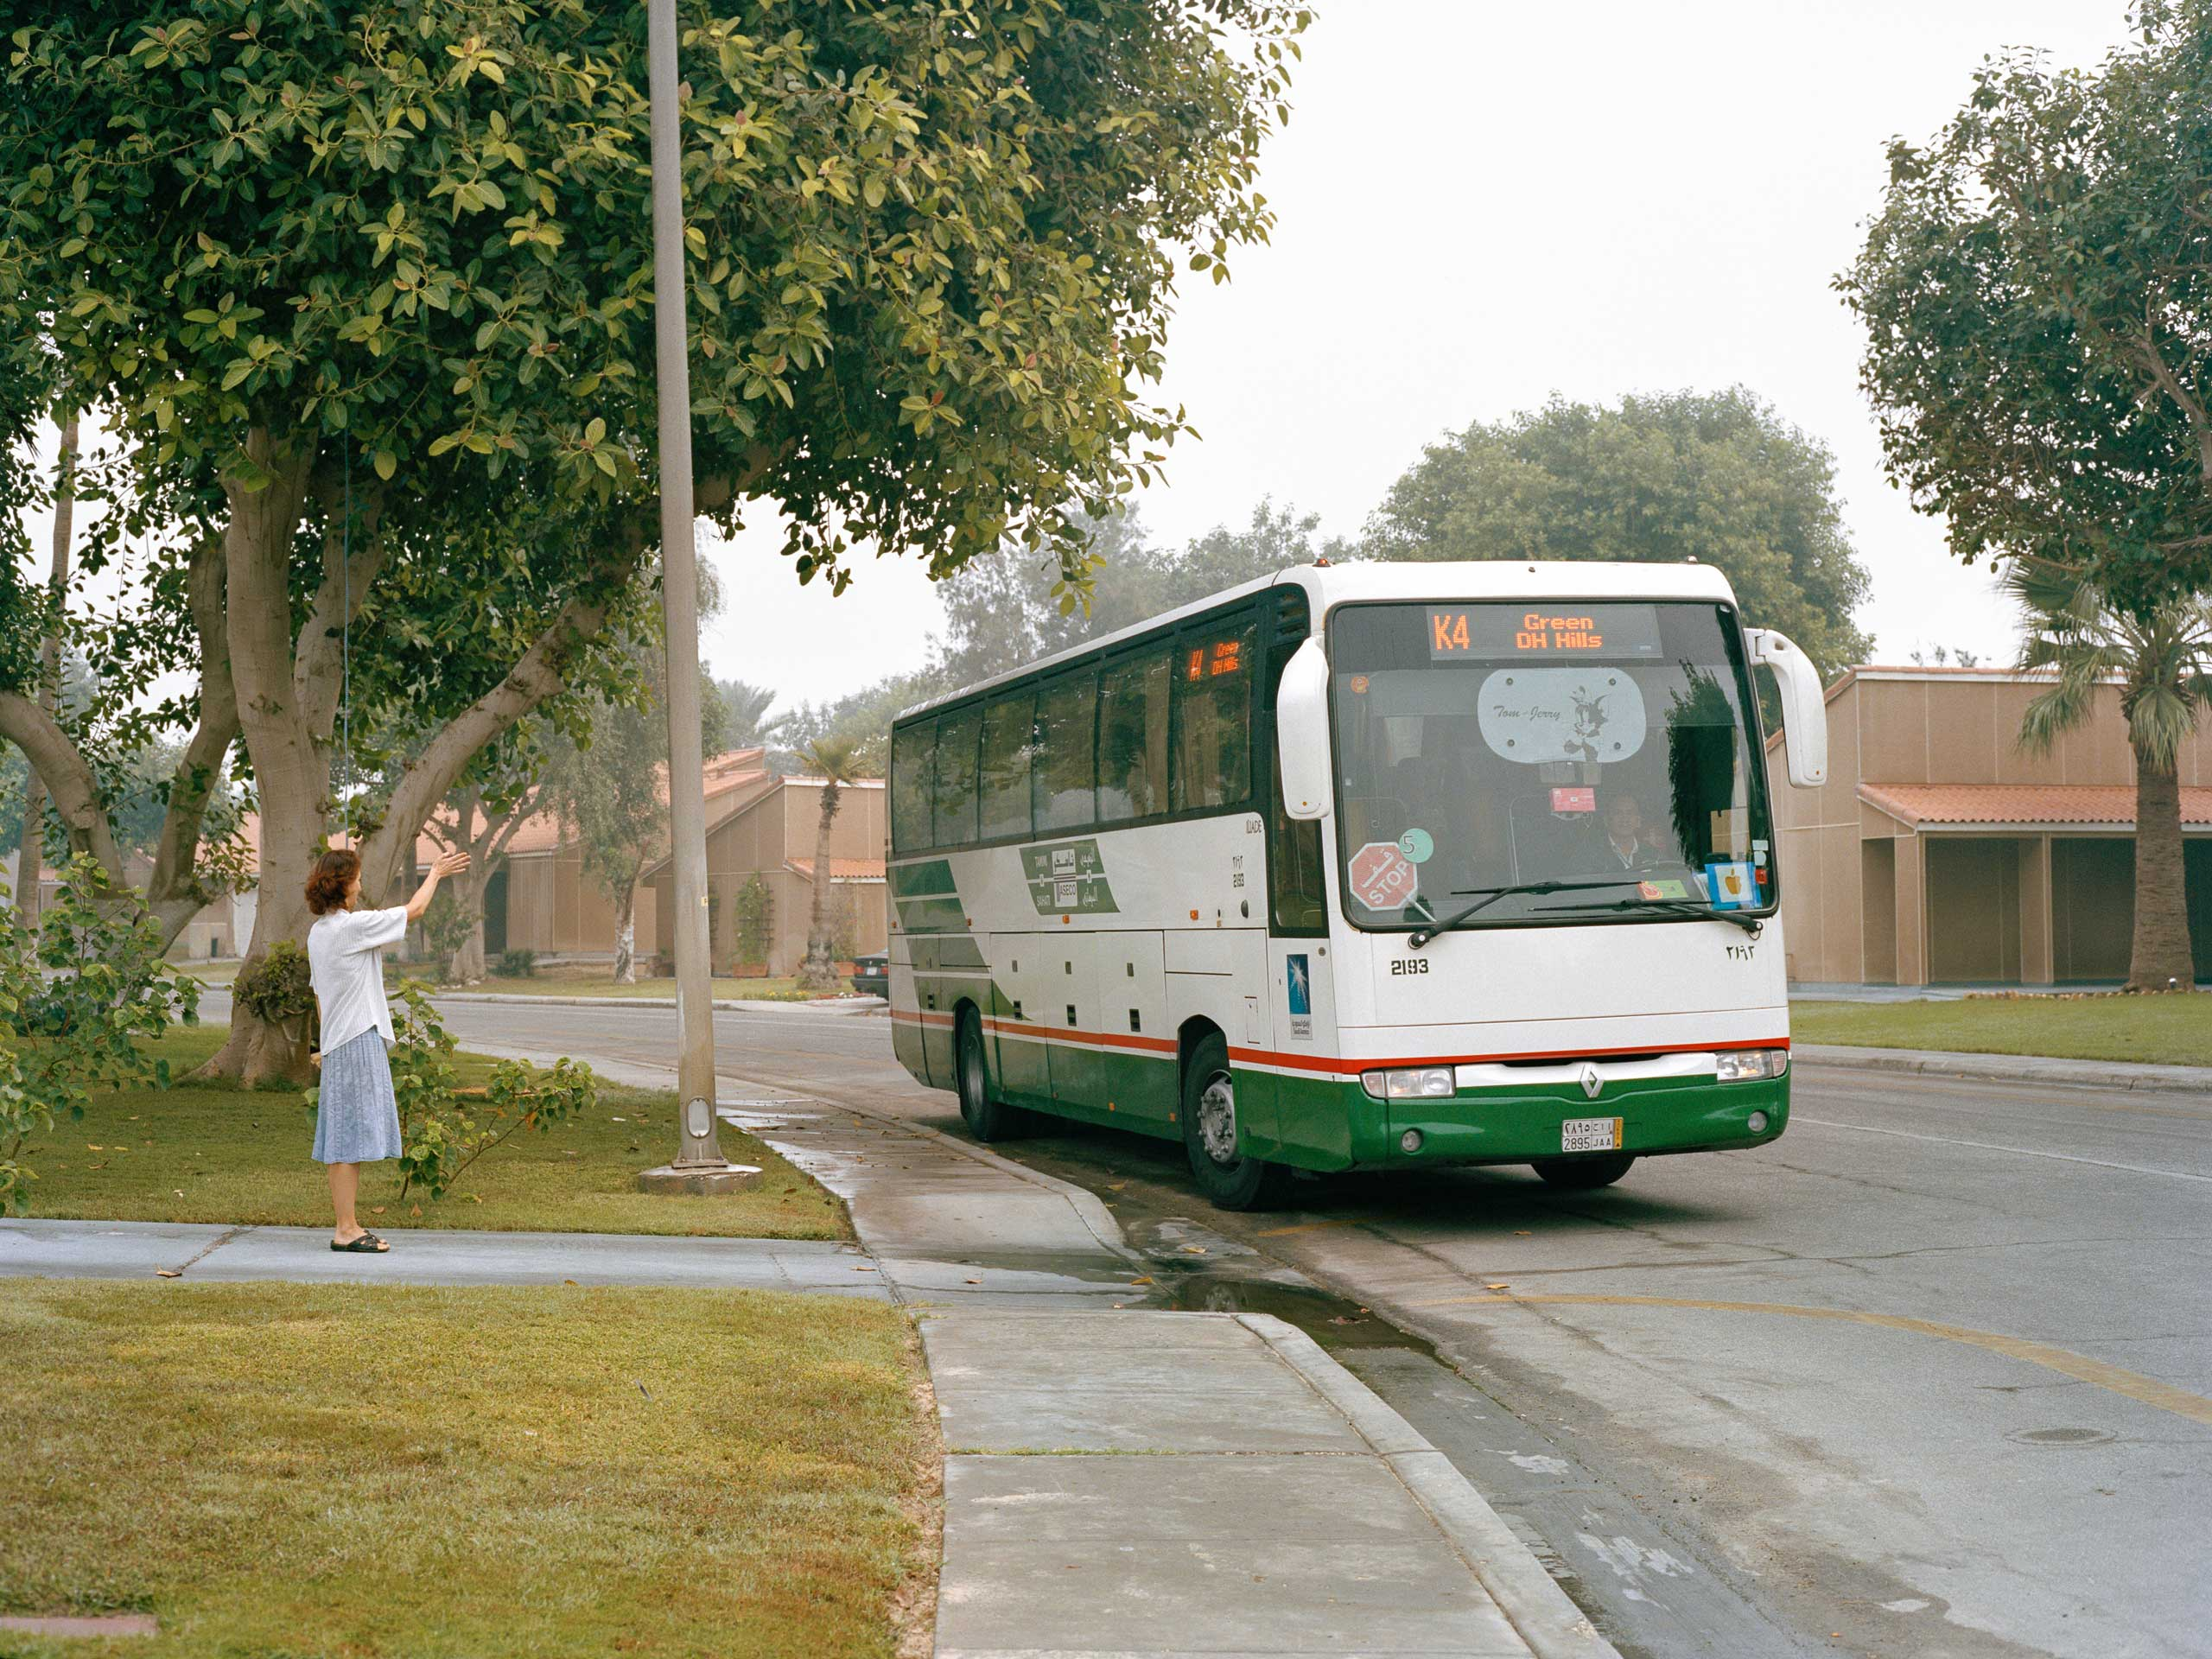 A mother waves goodbye to her daughter on Lemon Circle as she leaves for Dhahran School on the school bus at 7am. Aramco schools are all located within the compound.